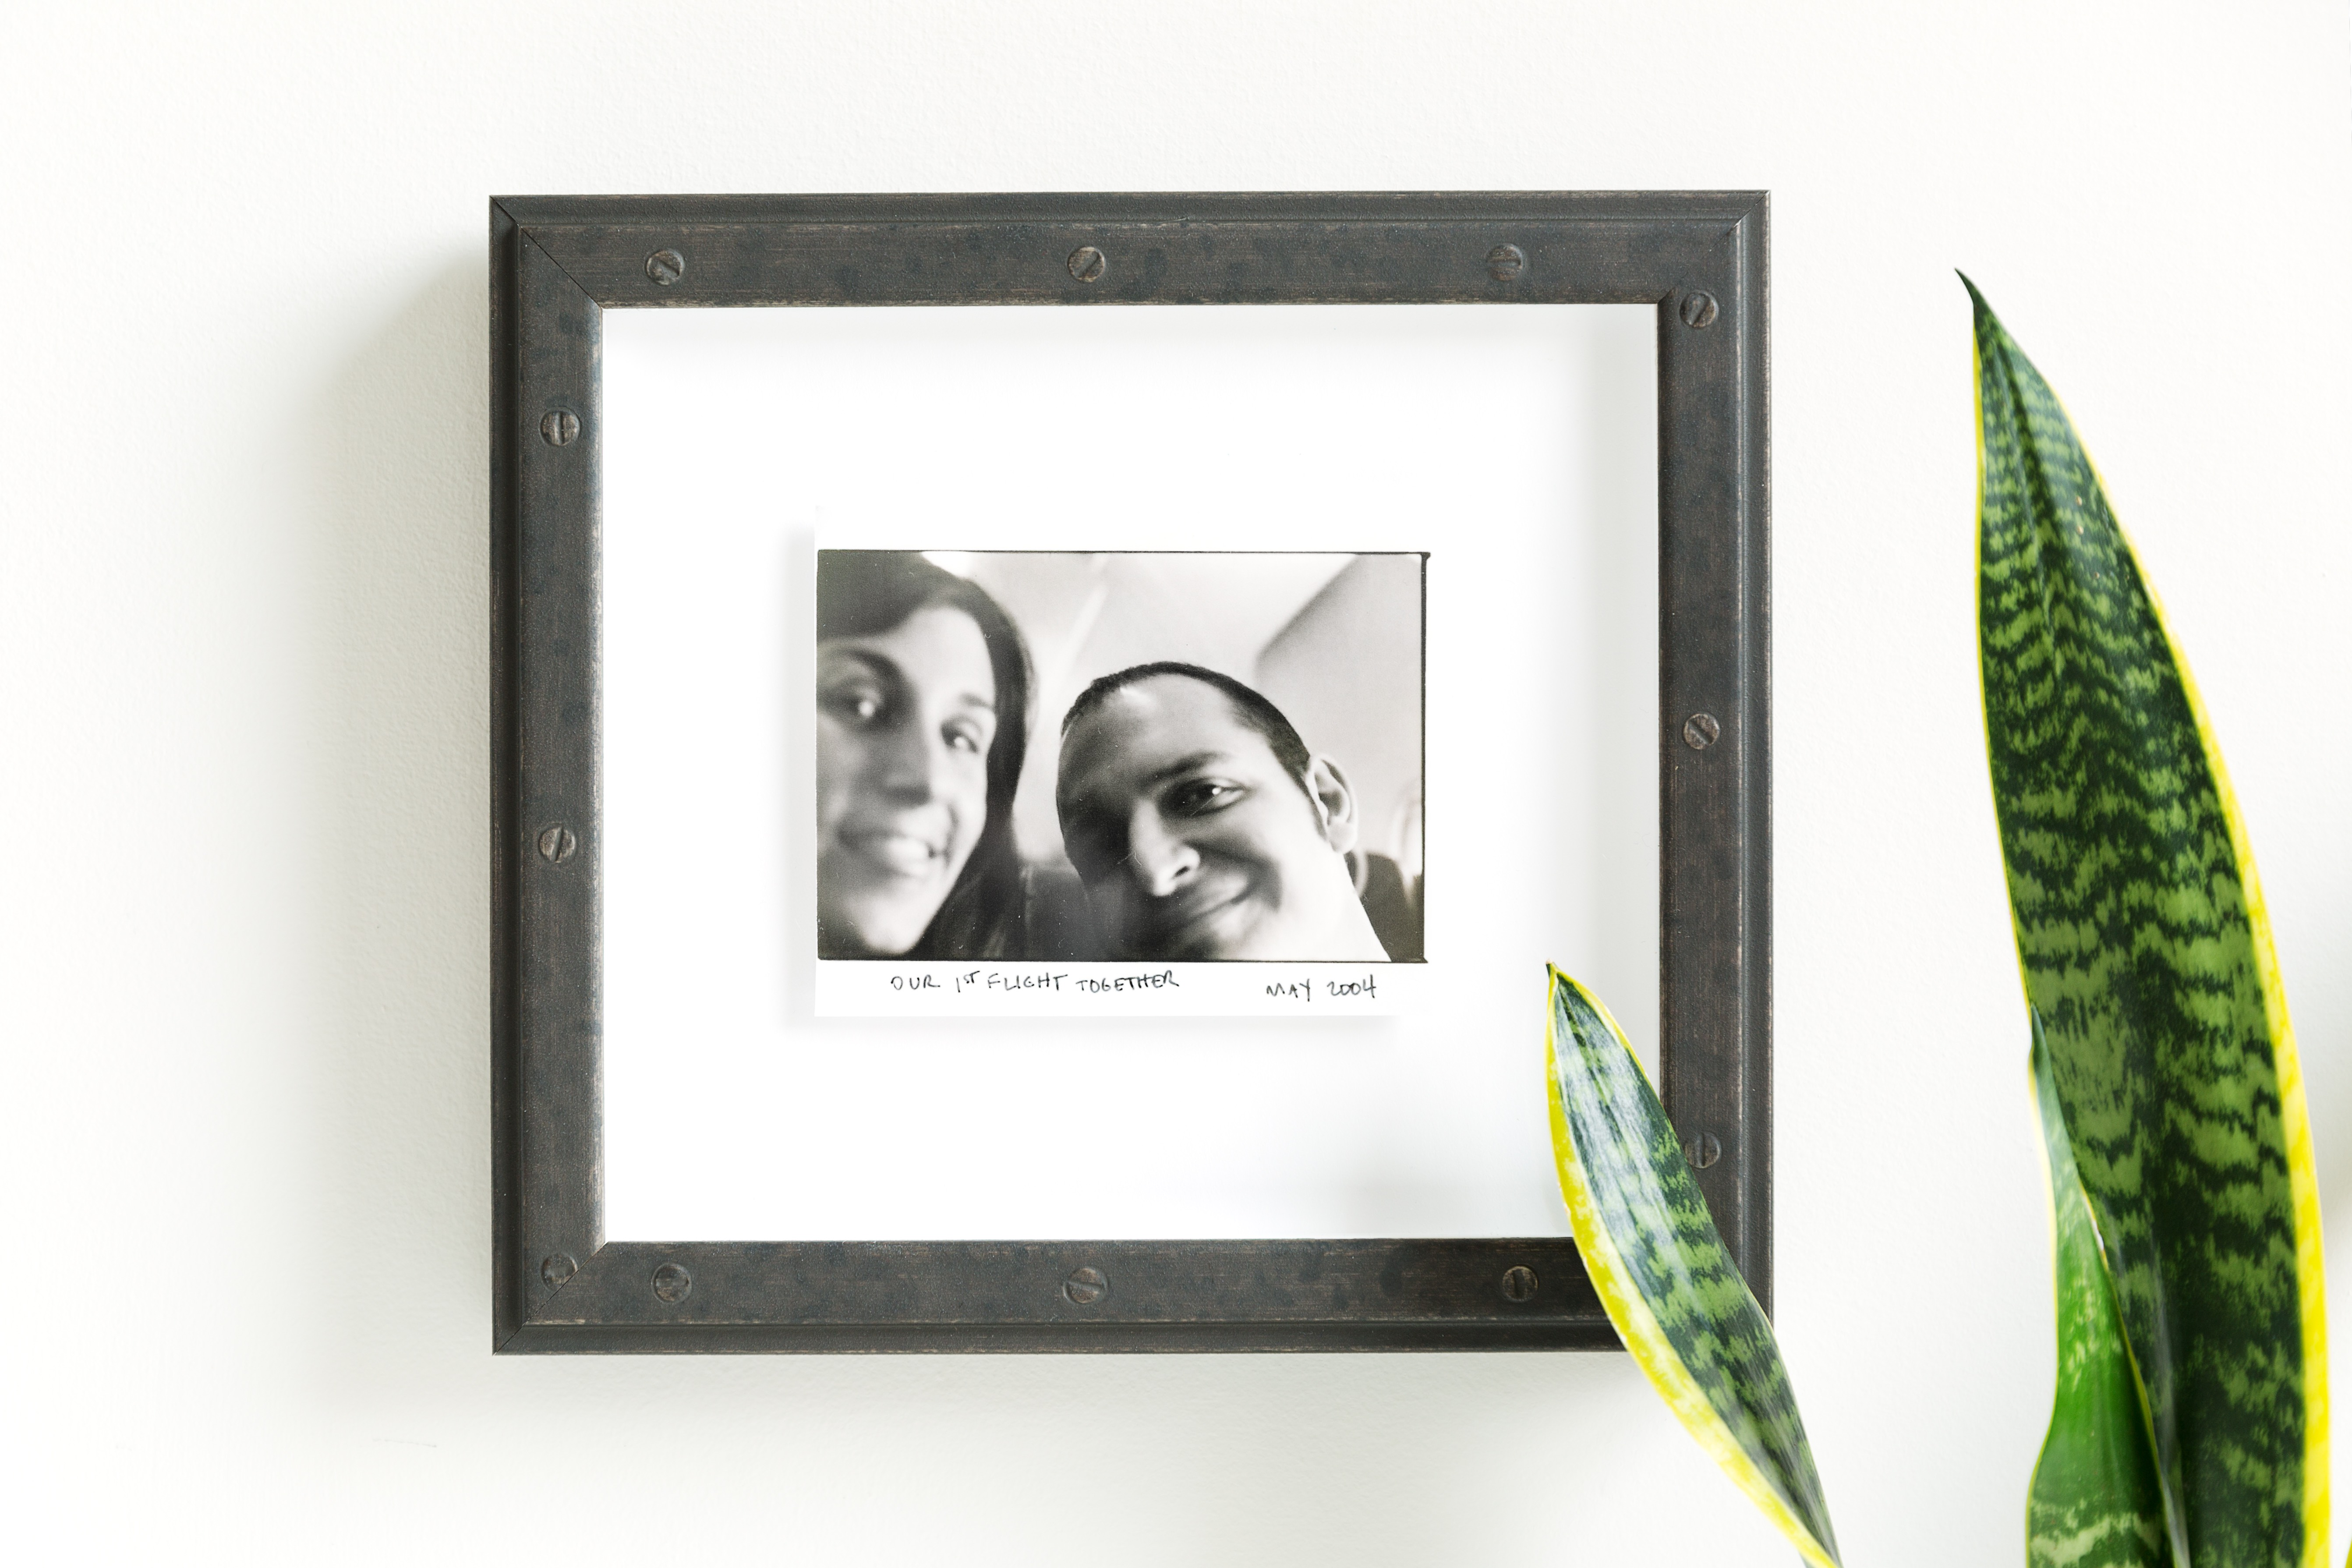 old photo of two people on a plane float mounted in a riveted steel frame on a white wall with a snake plant